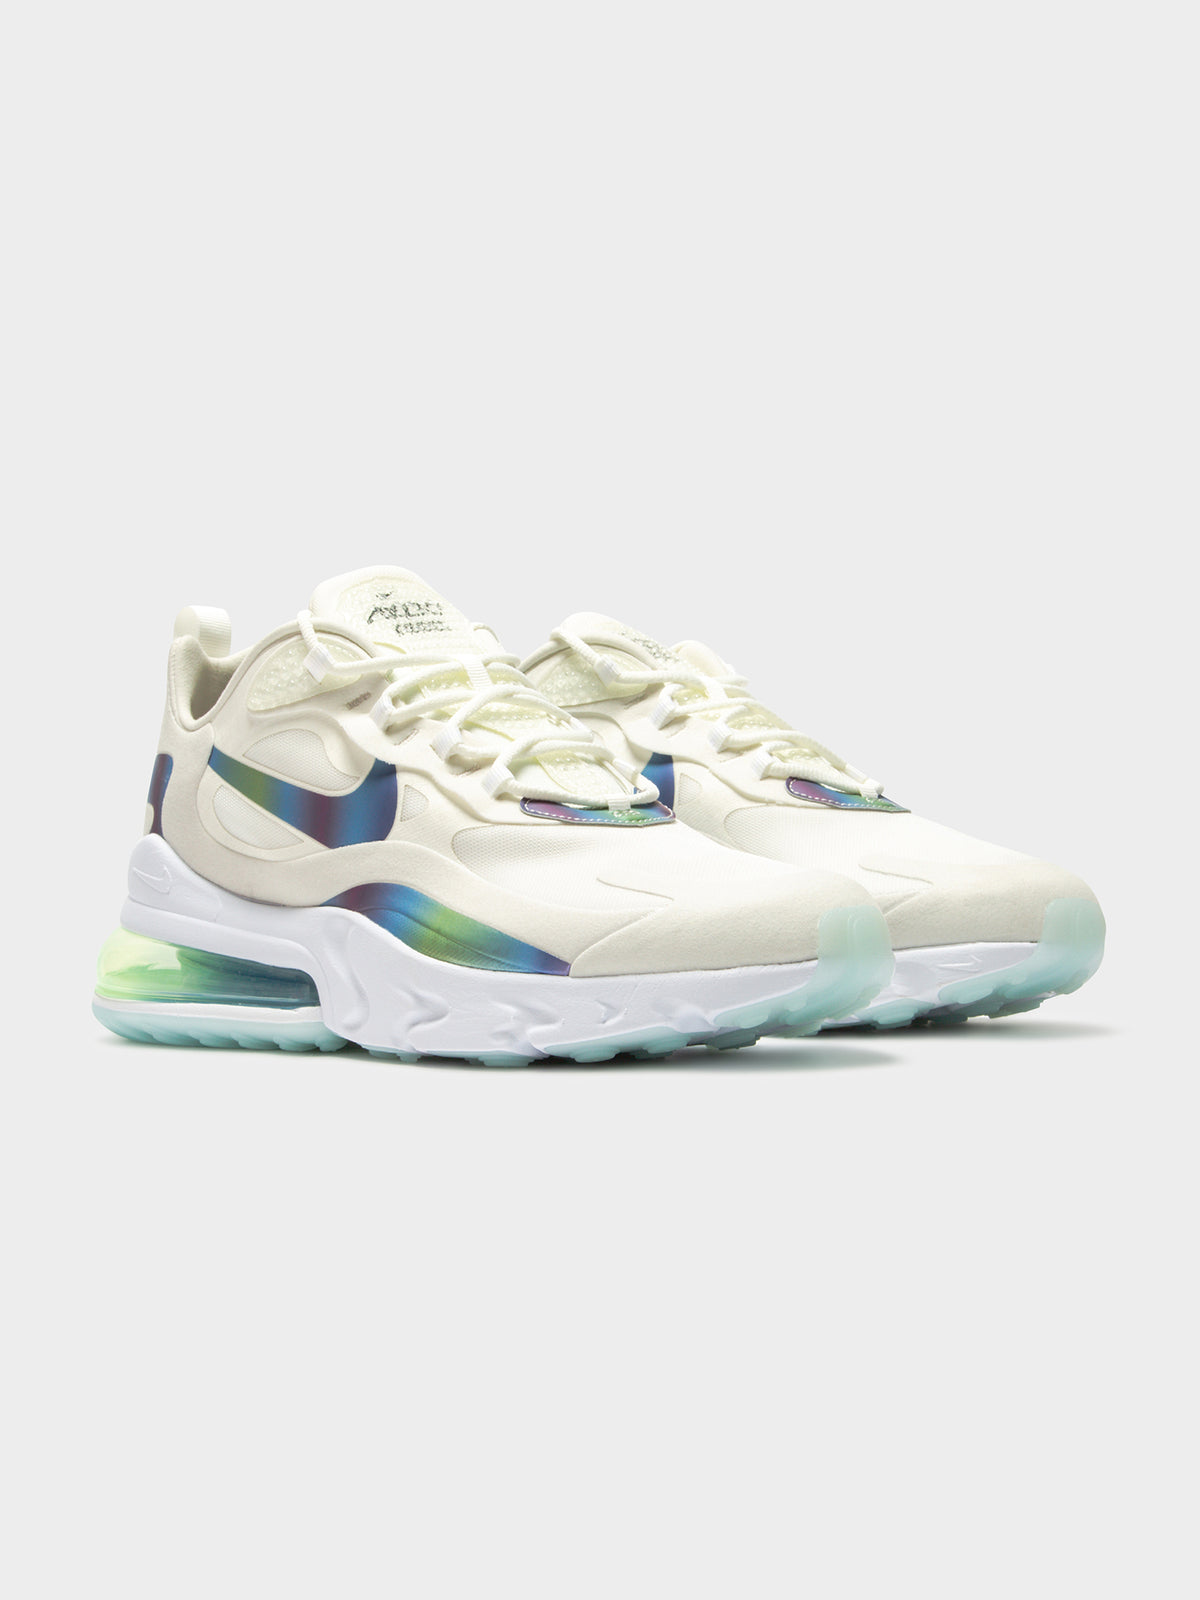 Mens Air Max 270 React Sneakers in White & Blue